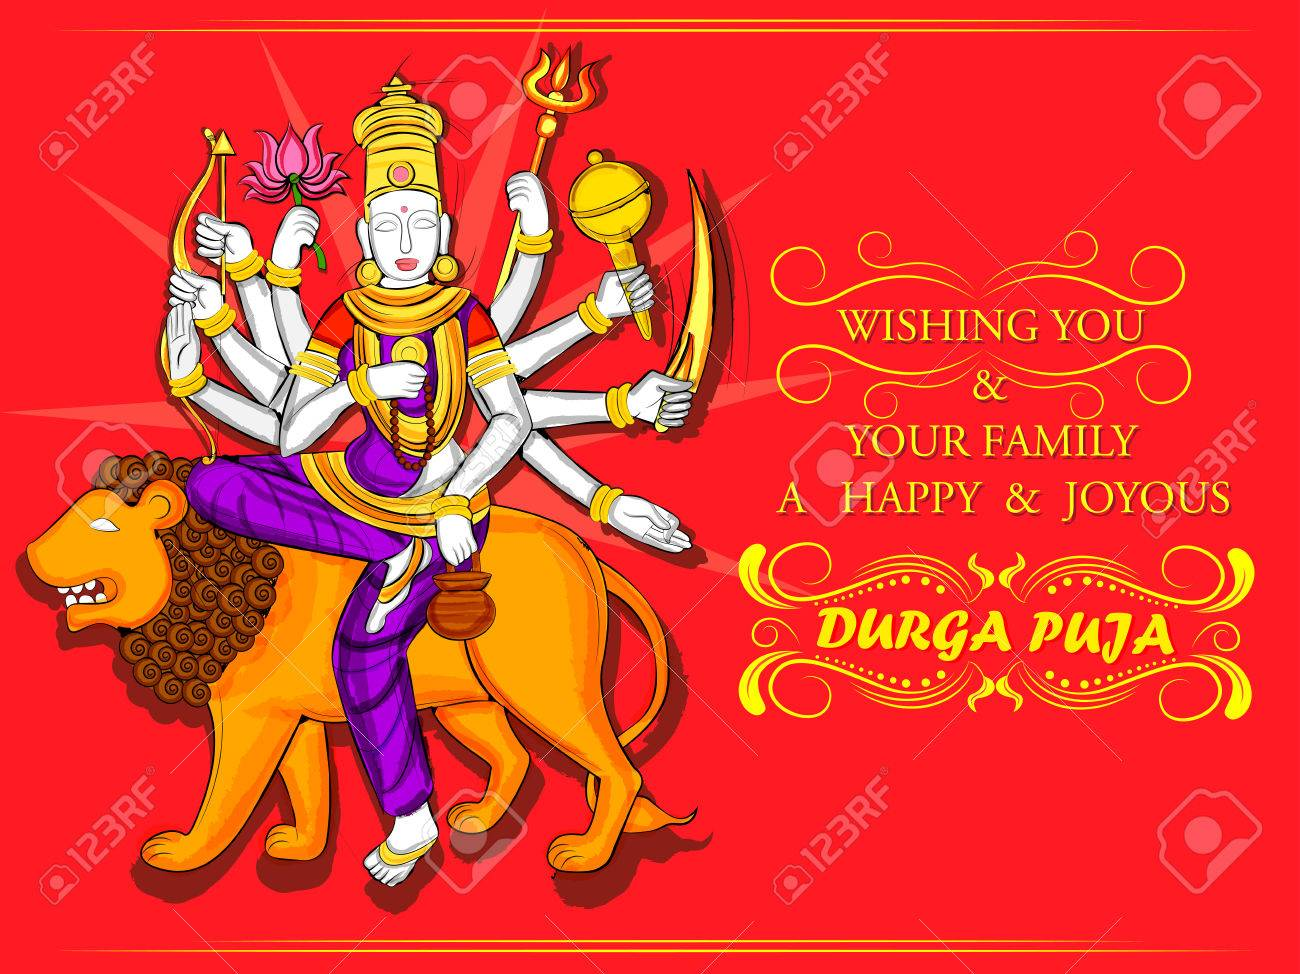 Vector design of indian goddess durga sculpture for durga puja vector design of indian goddess durga sculpture for durga puja holiday festival of india in dussehra kristyandbryce Image collections